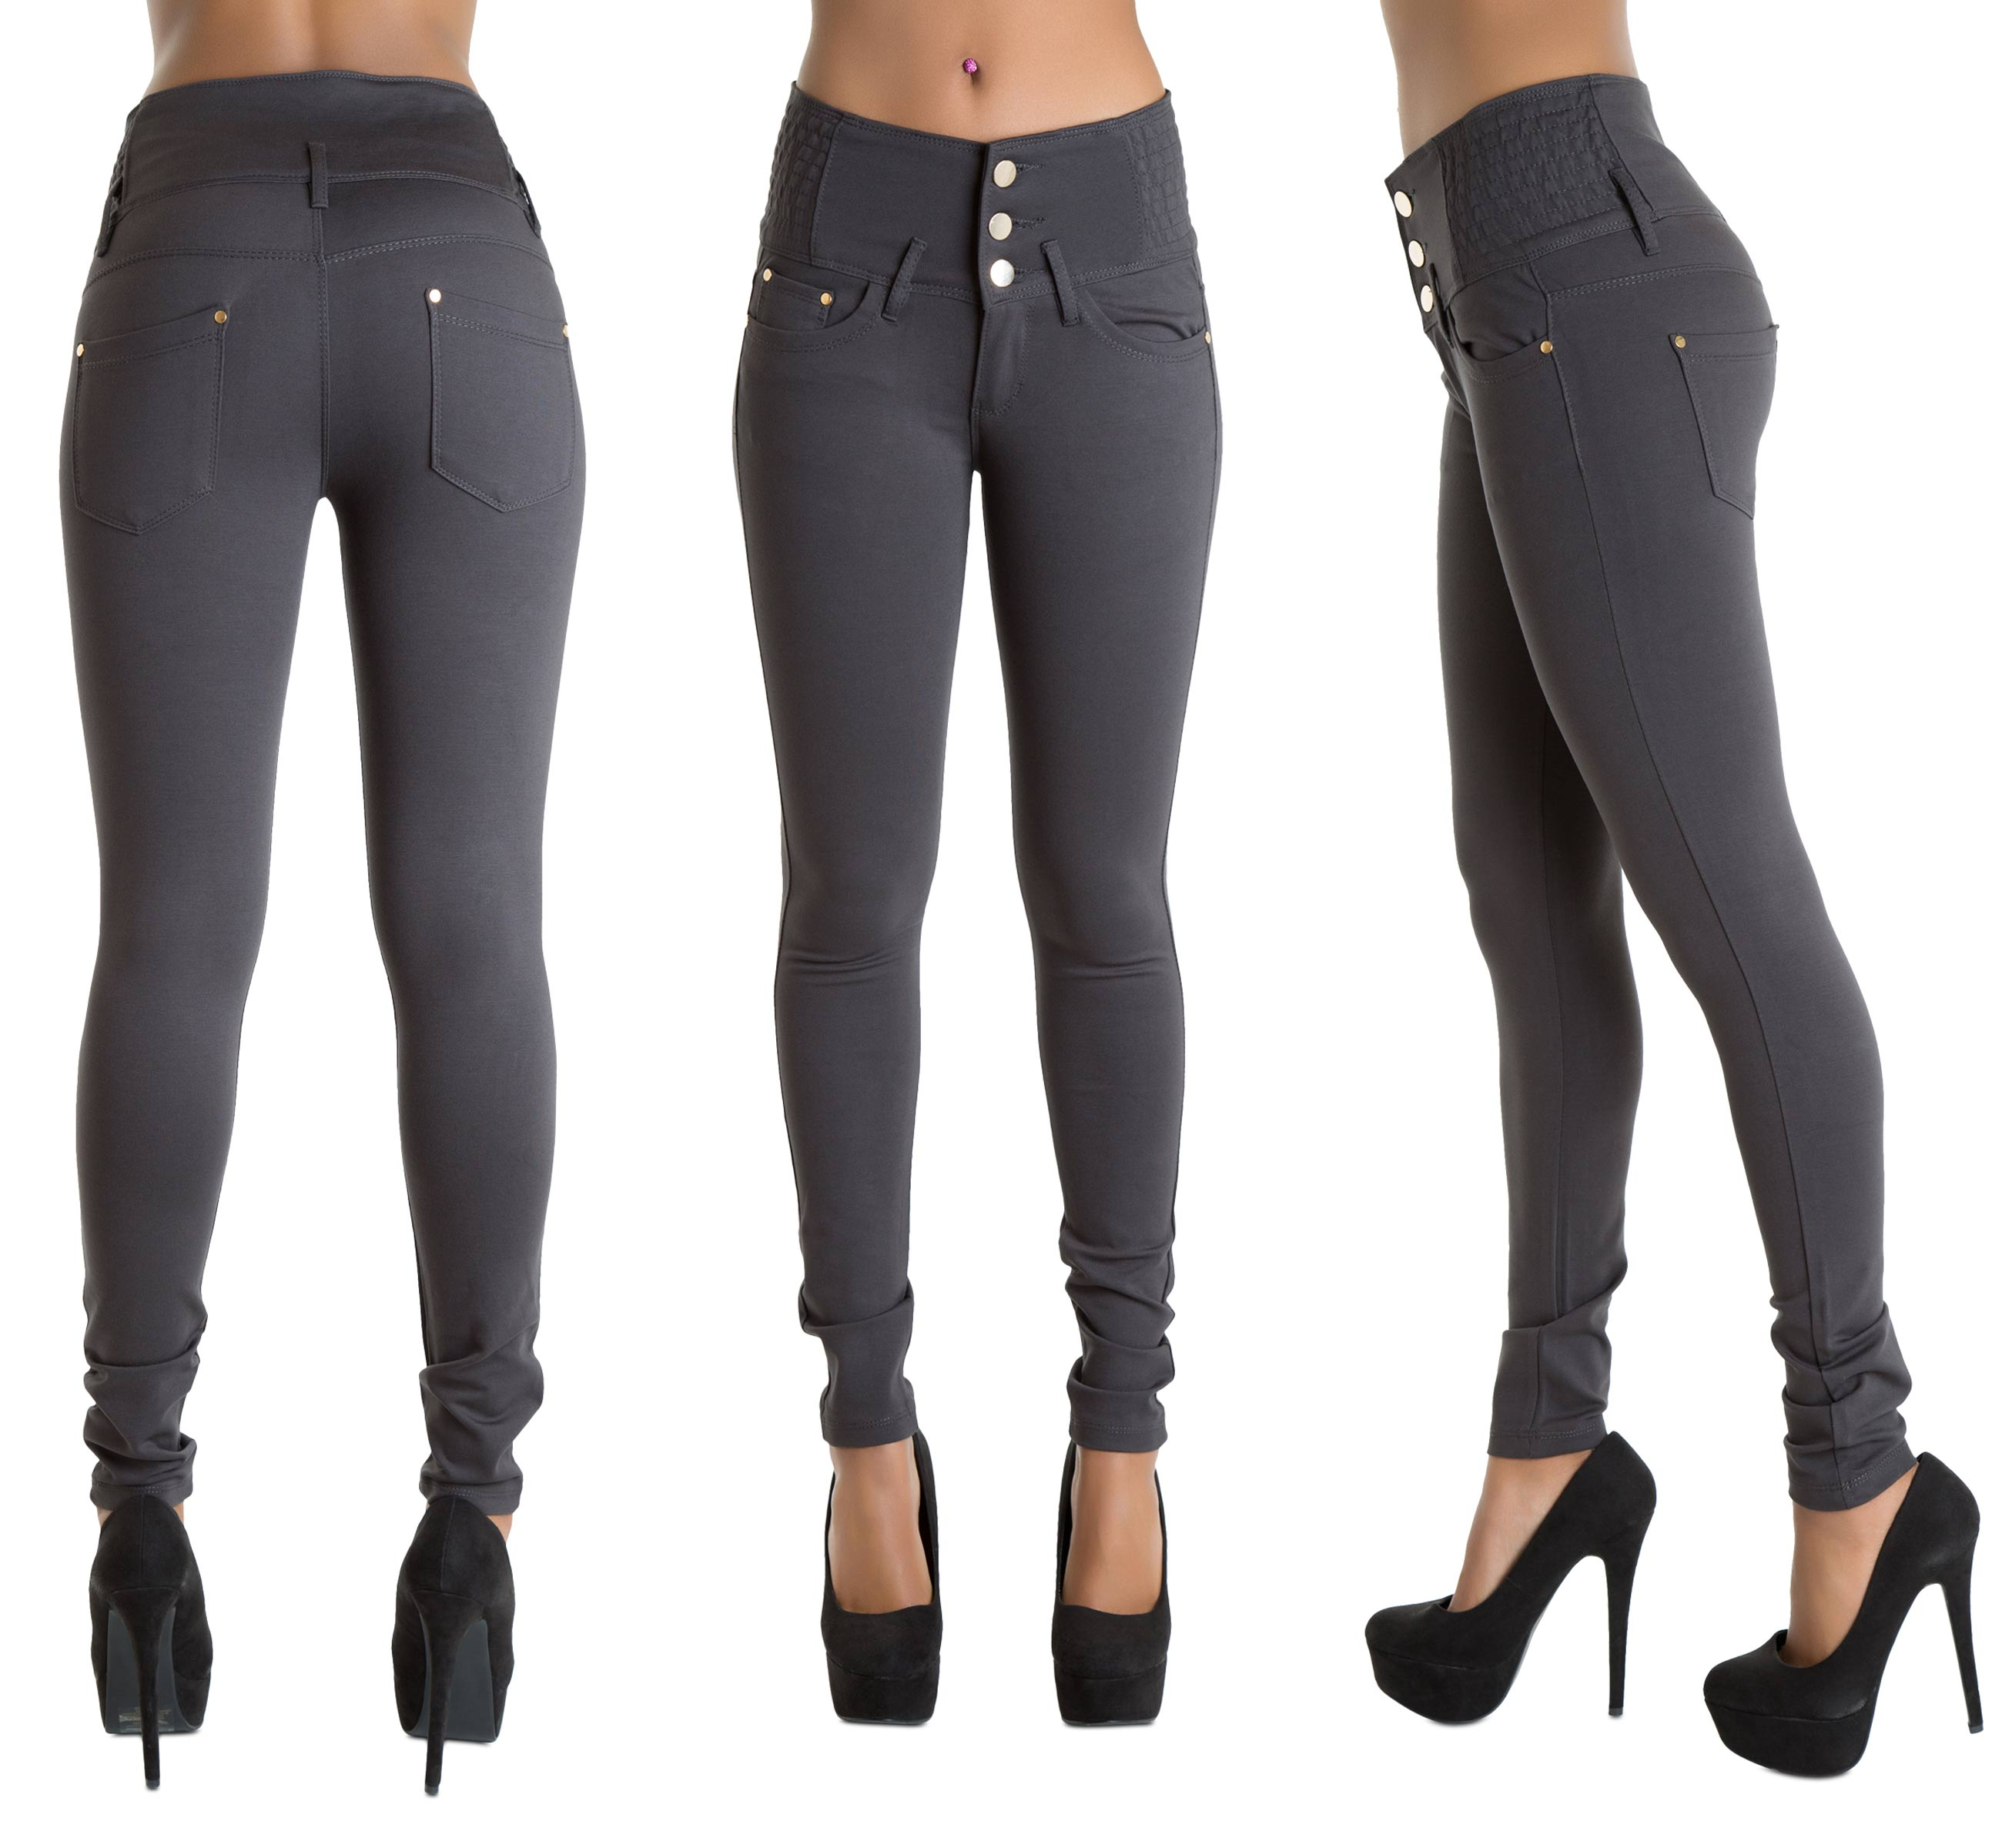 Compare your measurements from Steps 1 and 2 to a sizing chart. Size 2 pants fit waists of 24 inches and hips of inches. Size 4 pants fit waists of 25 inches and hips of inches. Size 6 pants fit waists of 26 inches and hips of inches. Size 8 pants fit waists of 27 inches and hips of inches.